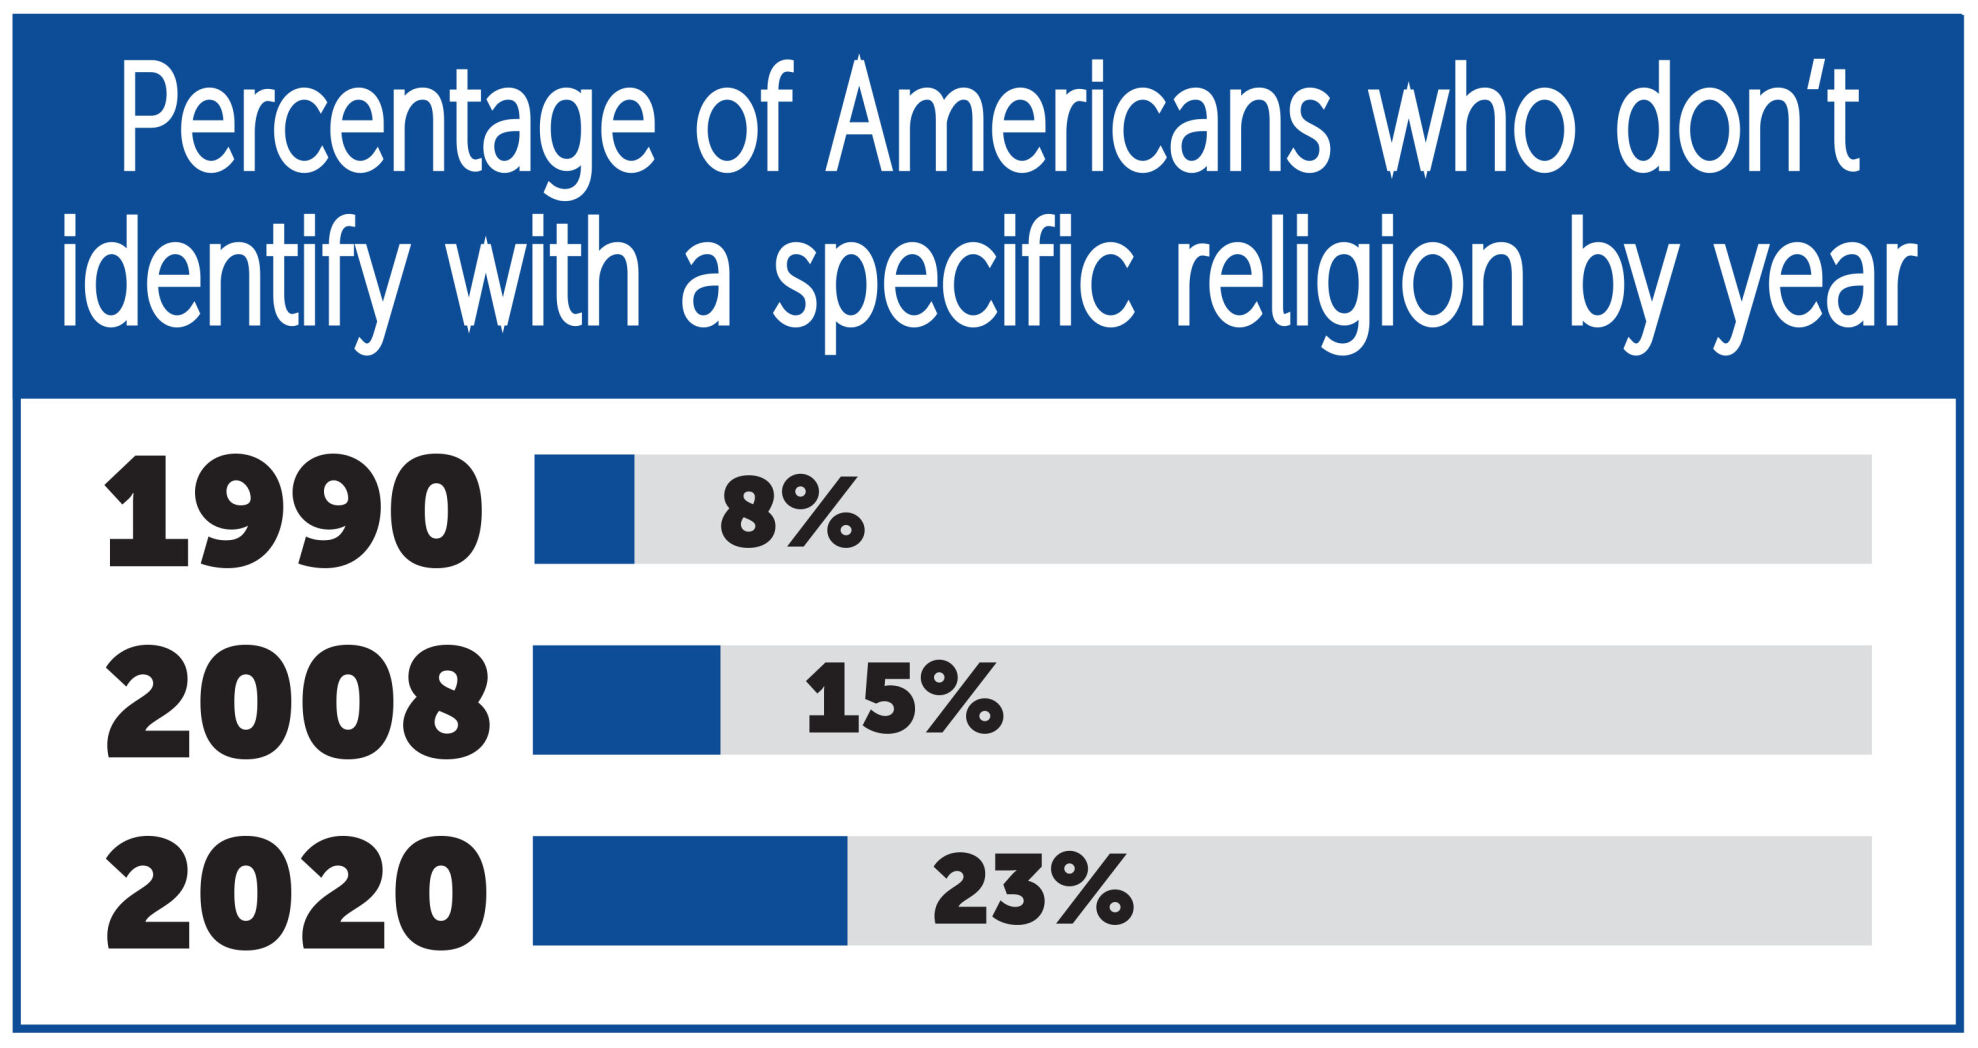 Nearly a quarter of population doesn't identify with specific religion